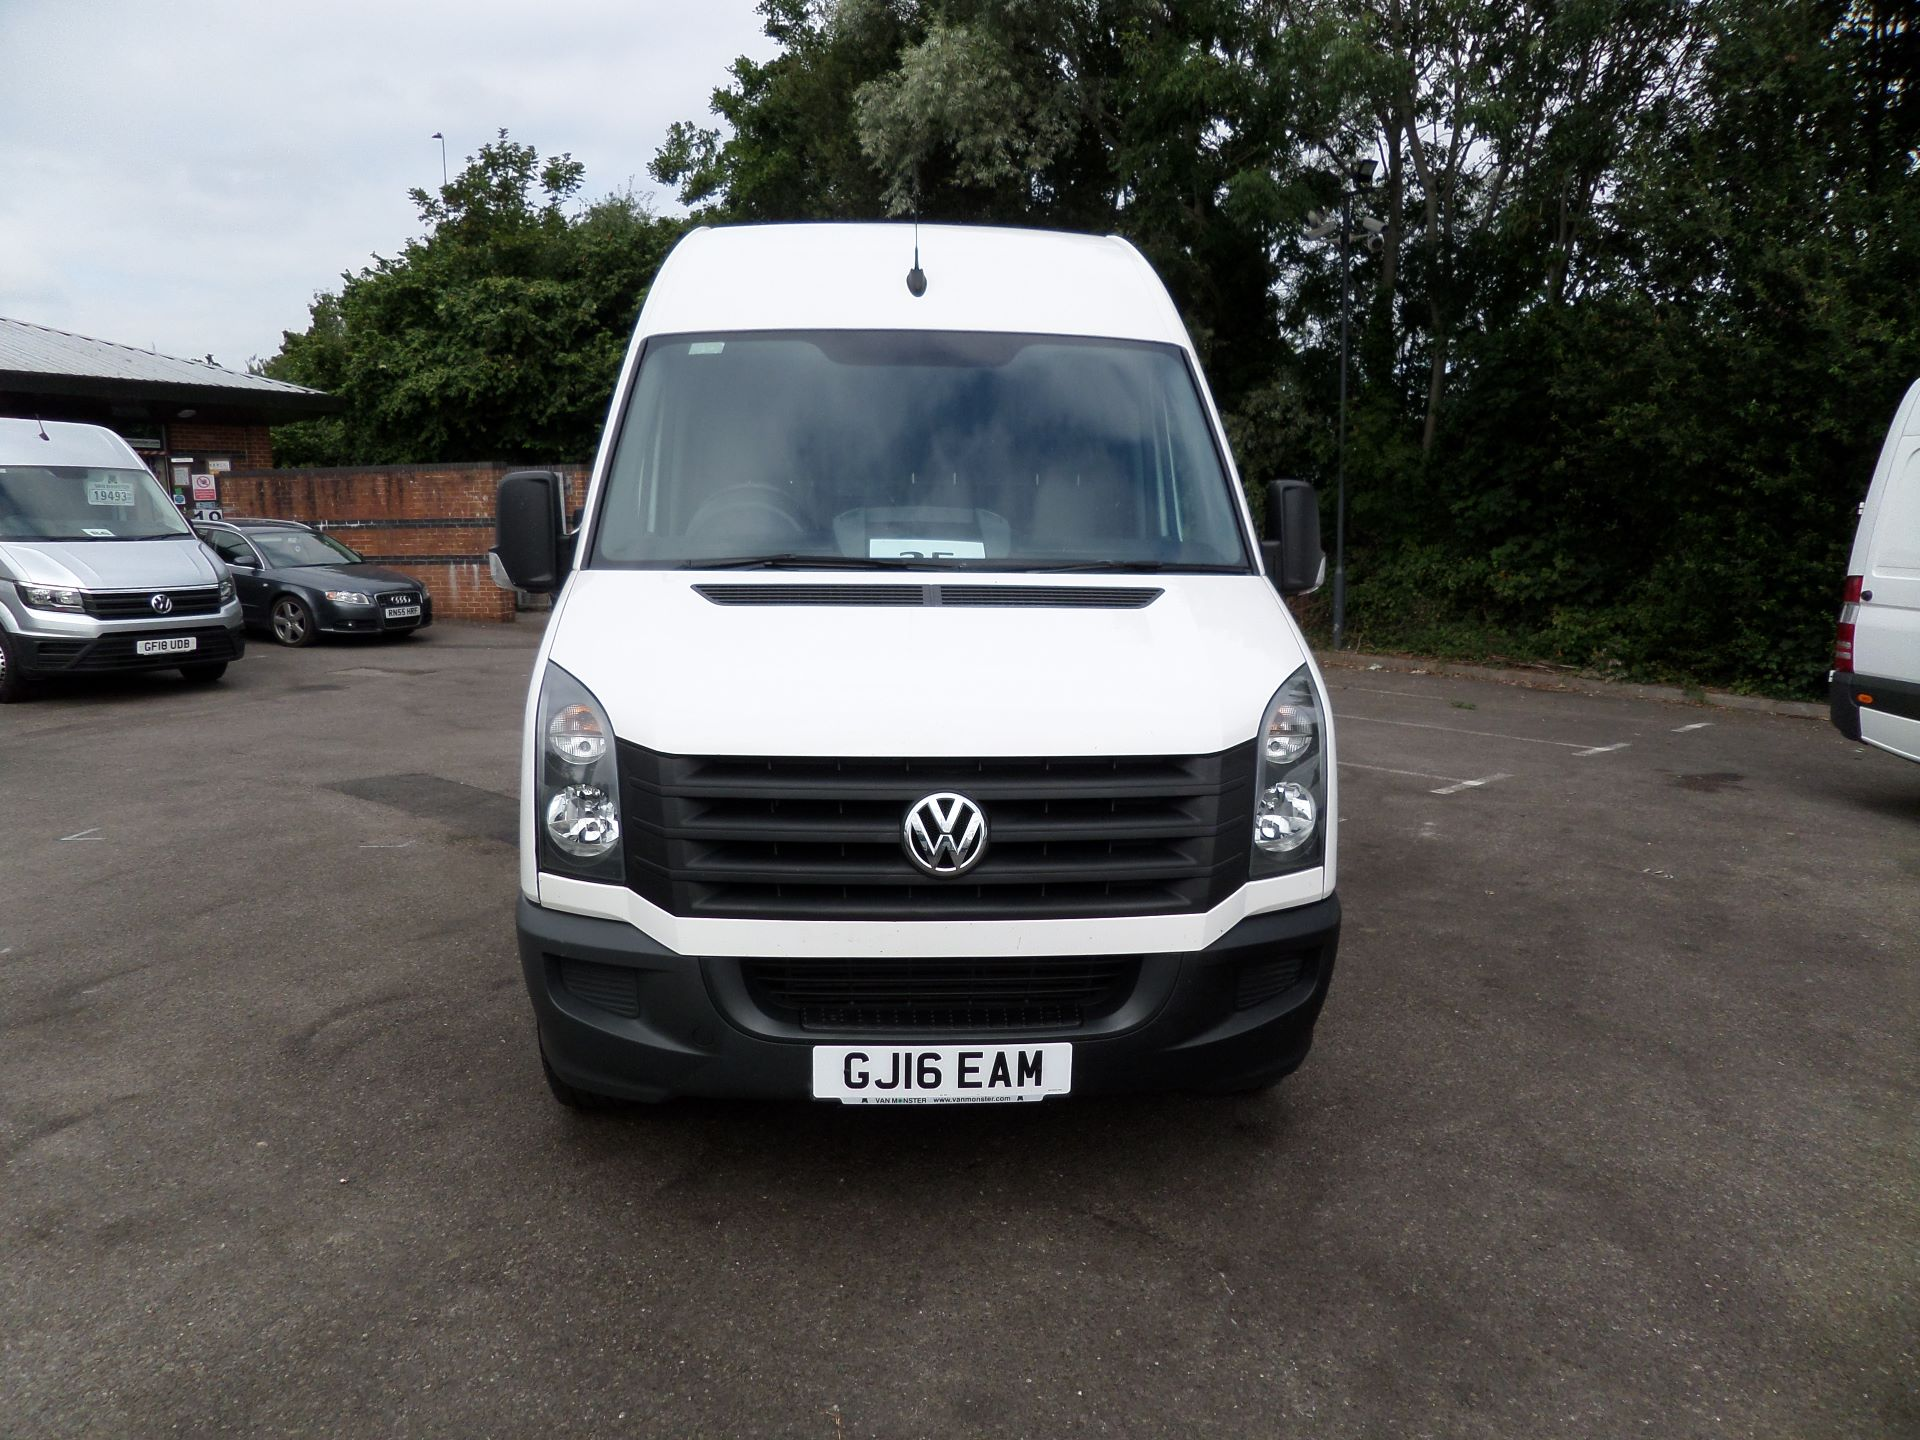 2016 Volkswagen Crafter  CR35 LWB 2.0 TDI 136PS HIGH ROOF EURO 5 (GJ16EAM) Image 14